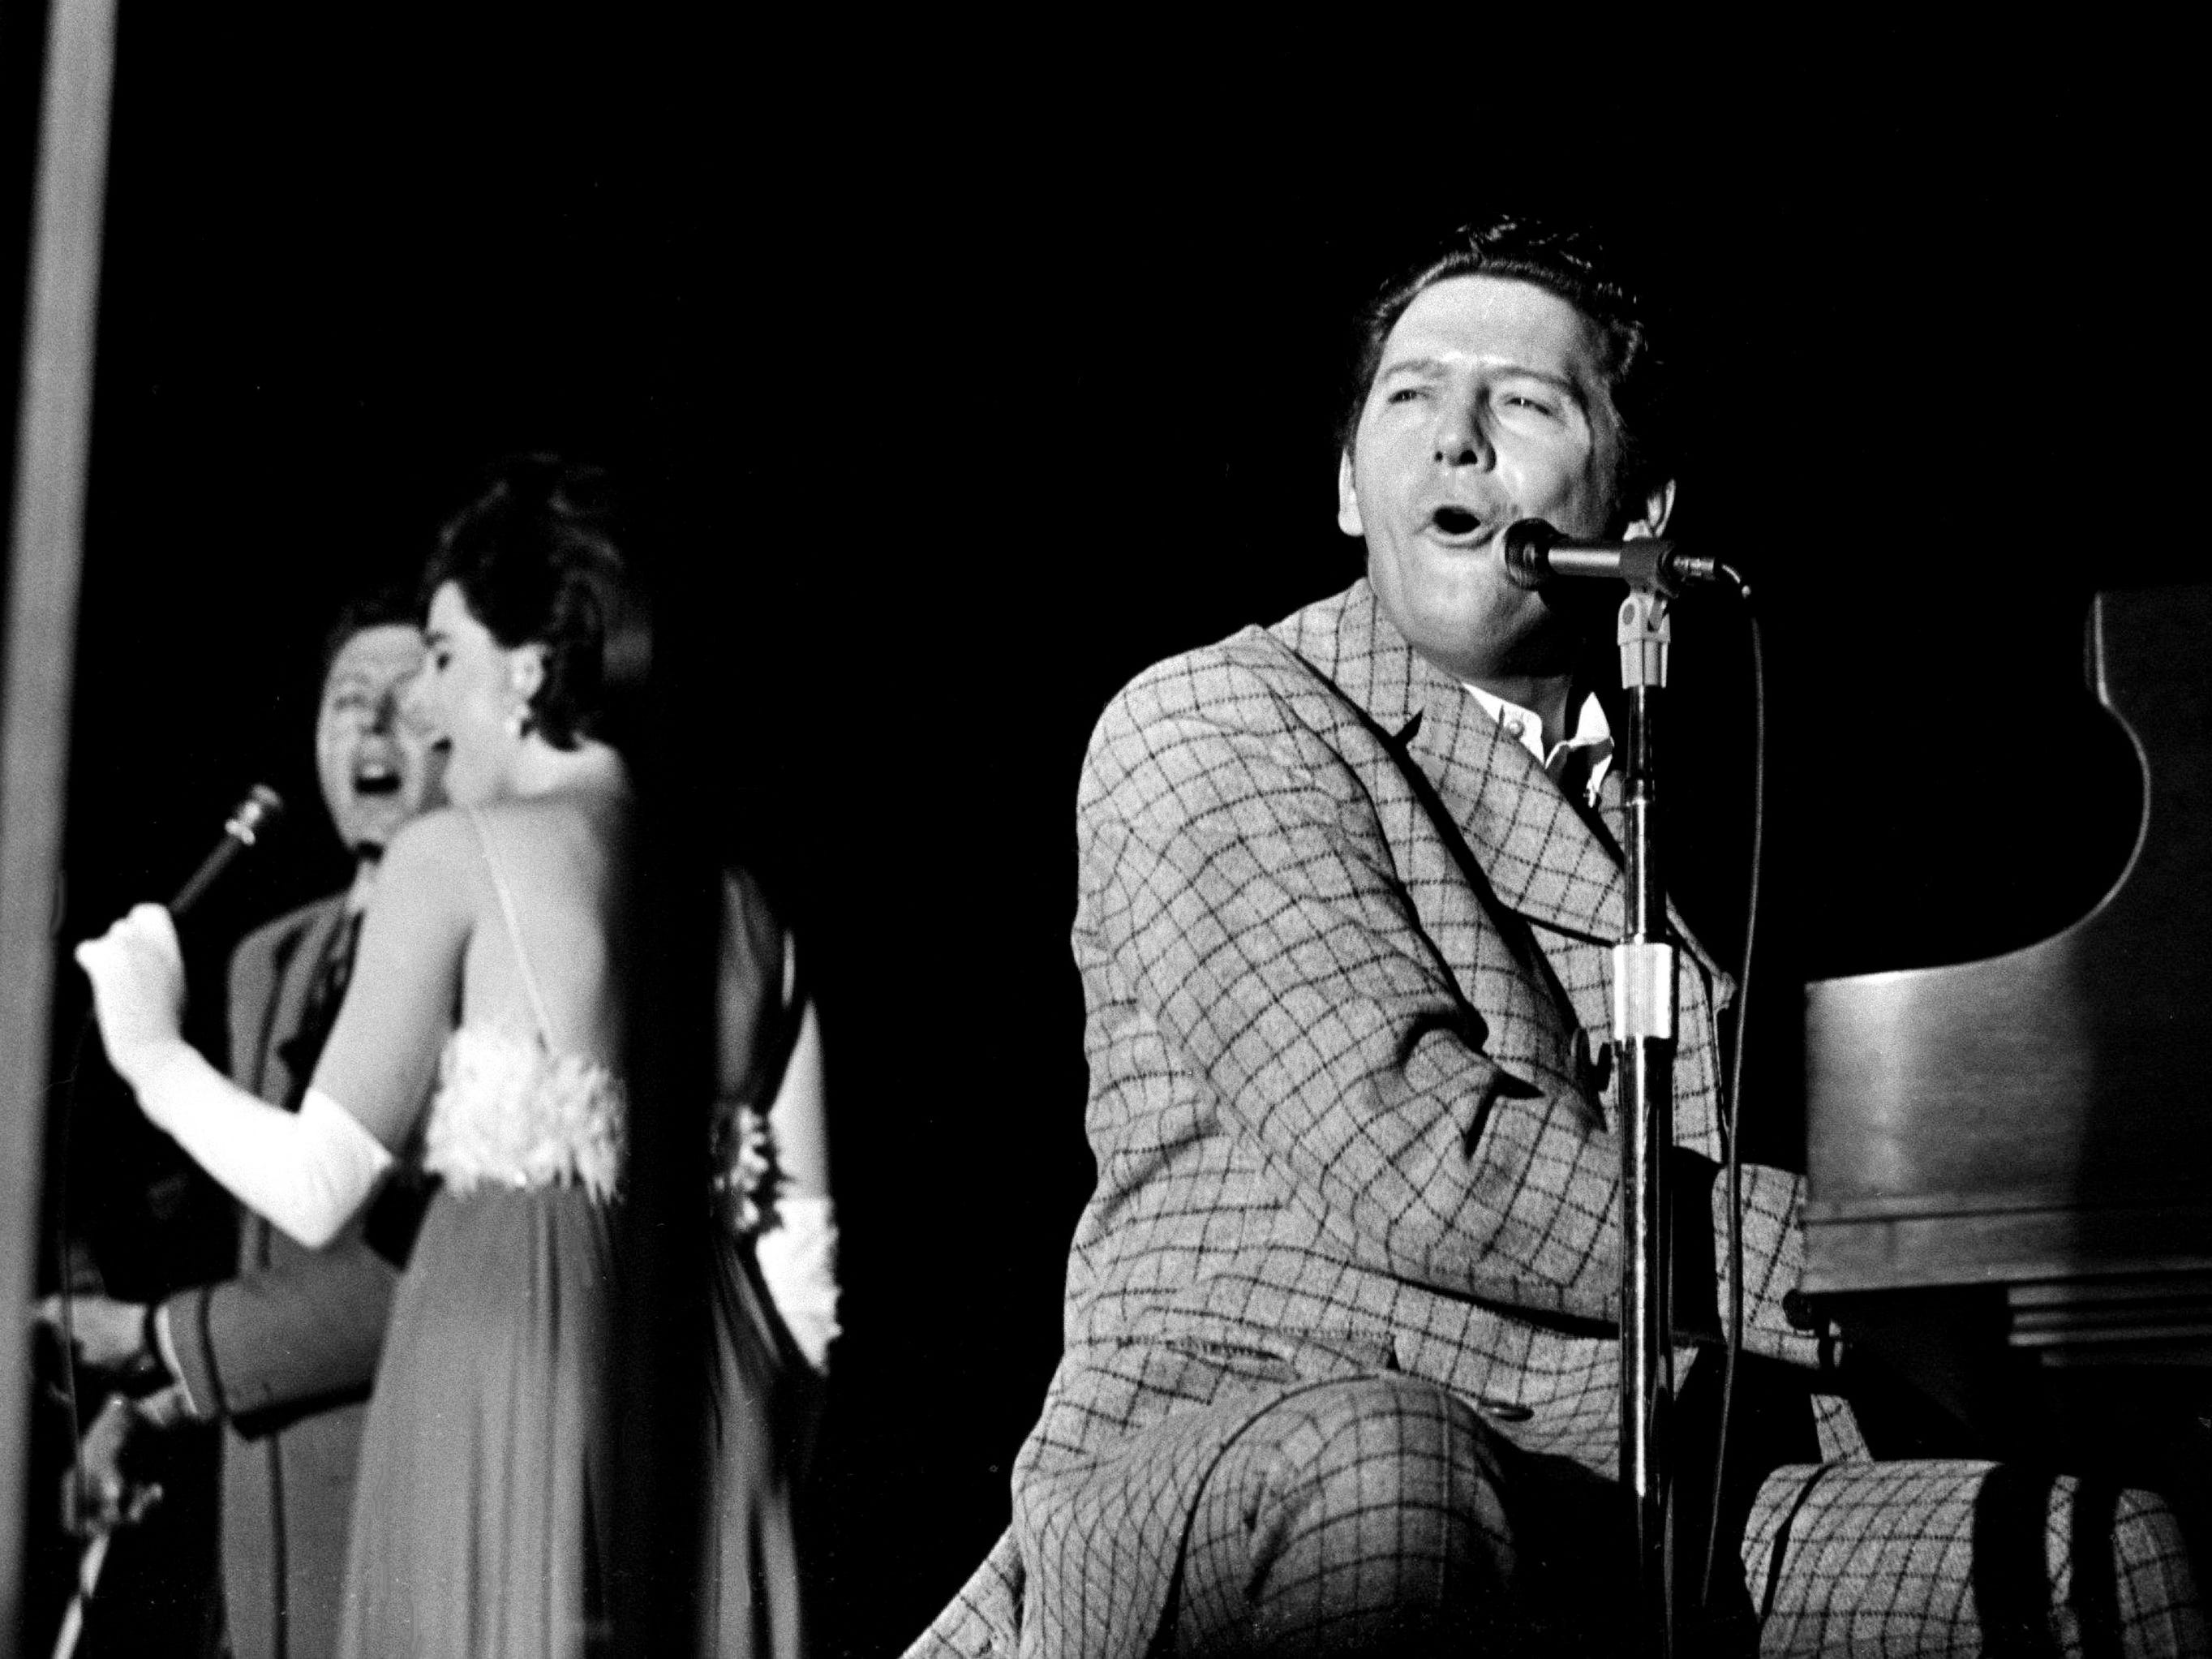 Jerry Lee Lewis, right, and his band is performing for the crowd of 950 during the NARAS annual gala awards celebration for the Grammy at the National Guard Armory March 12, 1969.